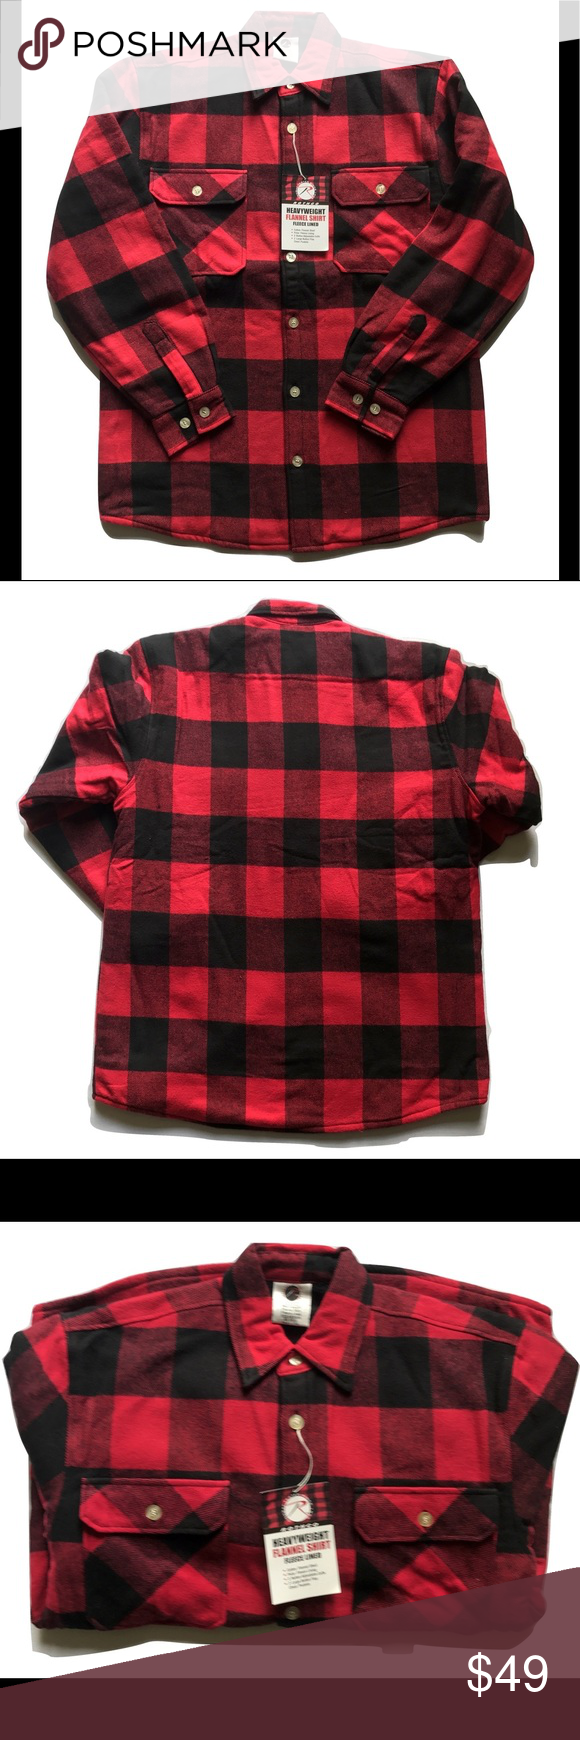 Fleece vs flannel  Rothco Mens Fleece Flannel Shirt Red u Black Plaid NWT  My Posh